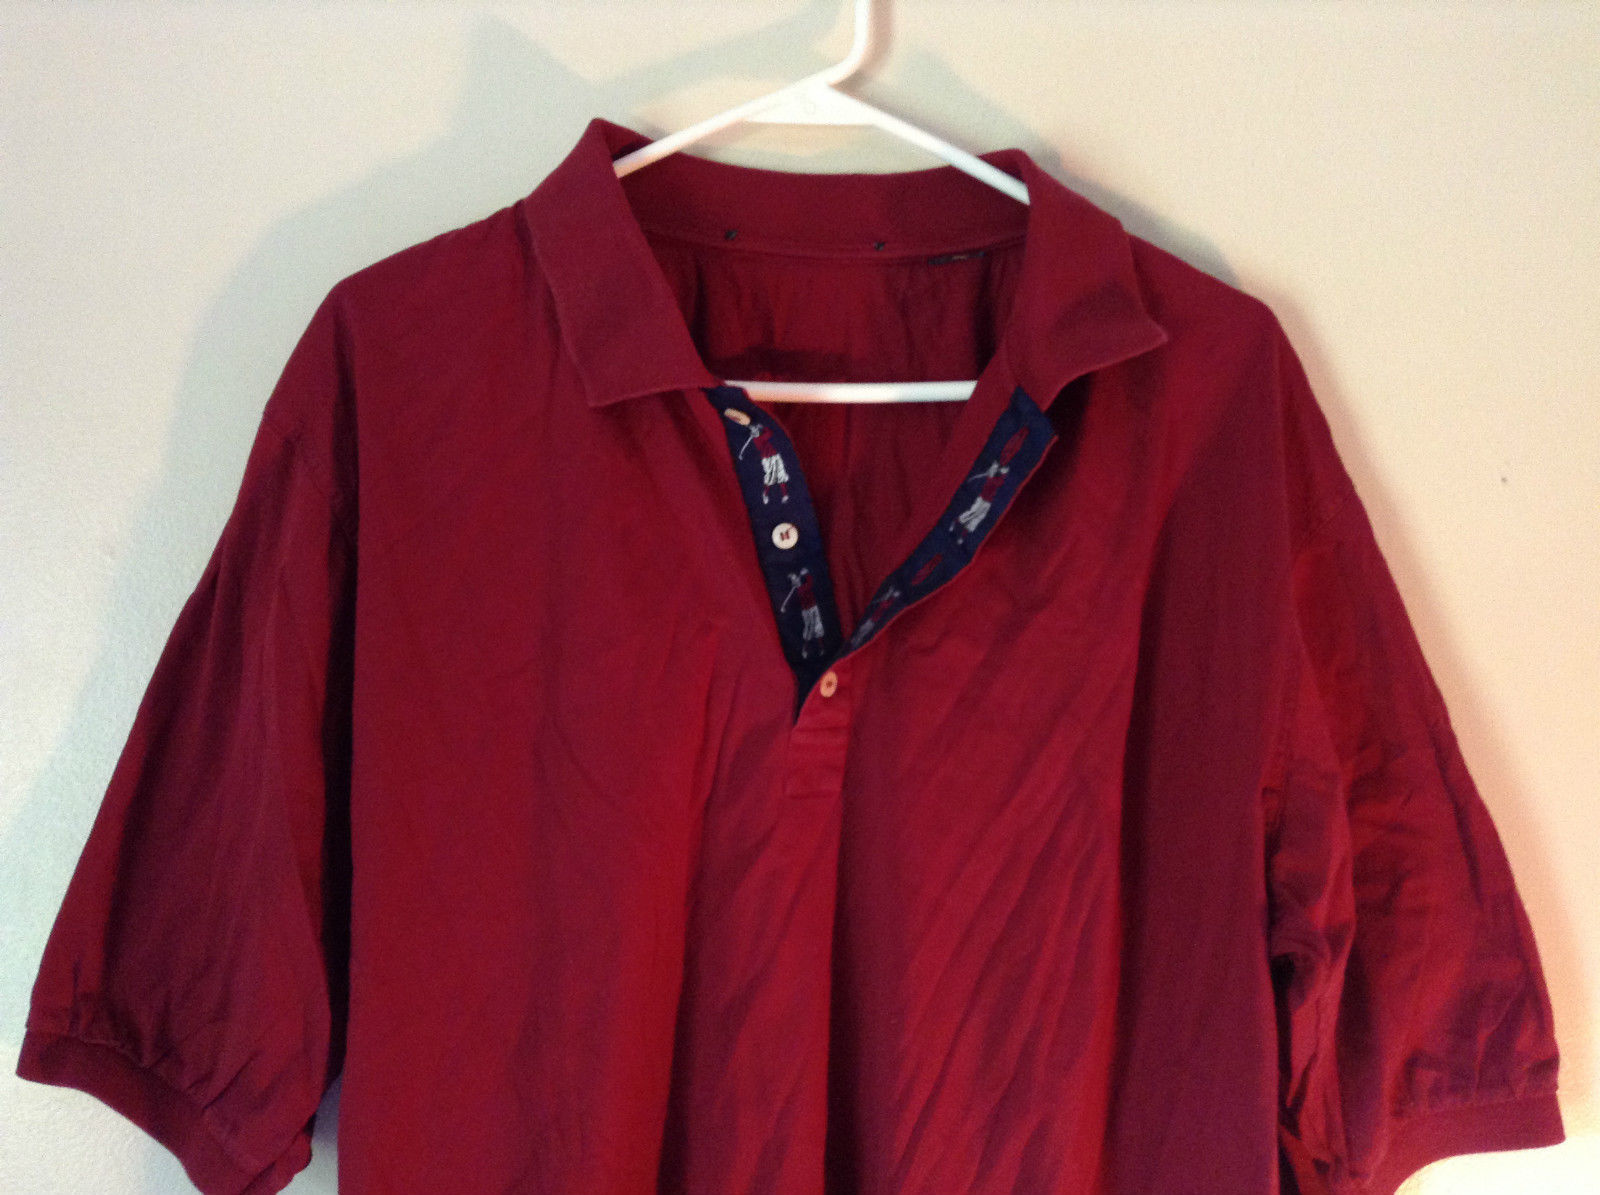 Red Short Sleeve Polo Shirt 3 Button Collared Closure No Tags Measurements Below